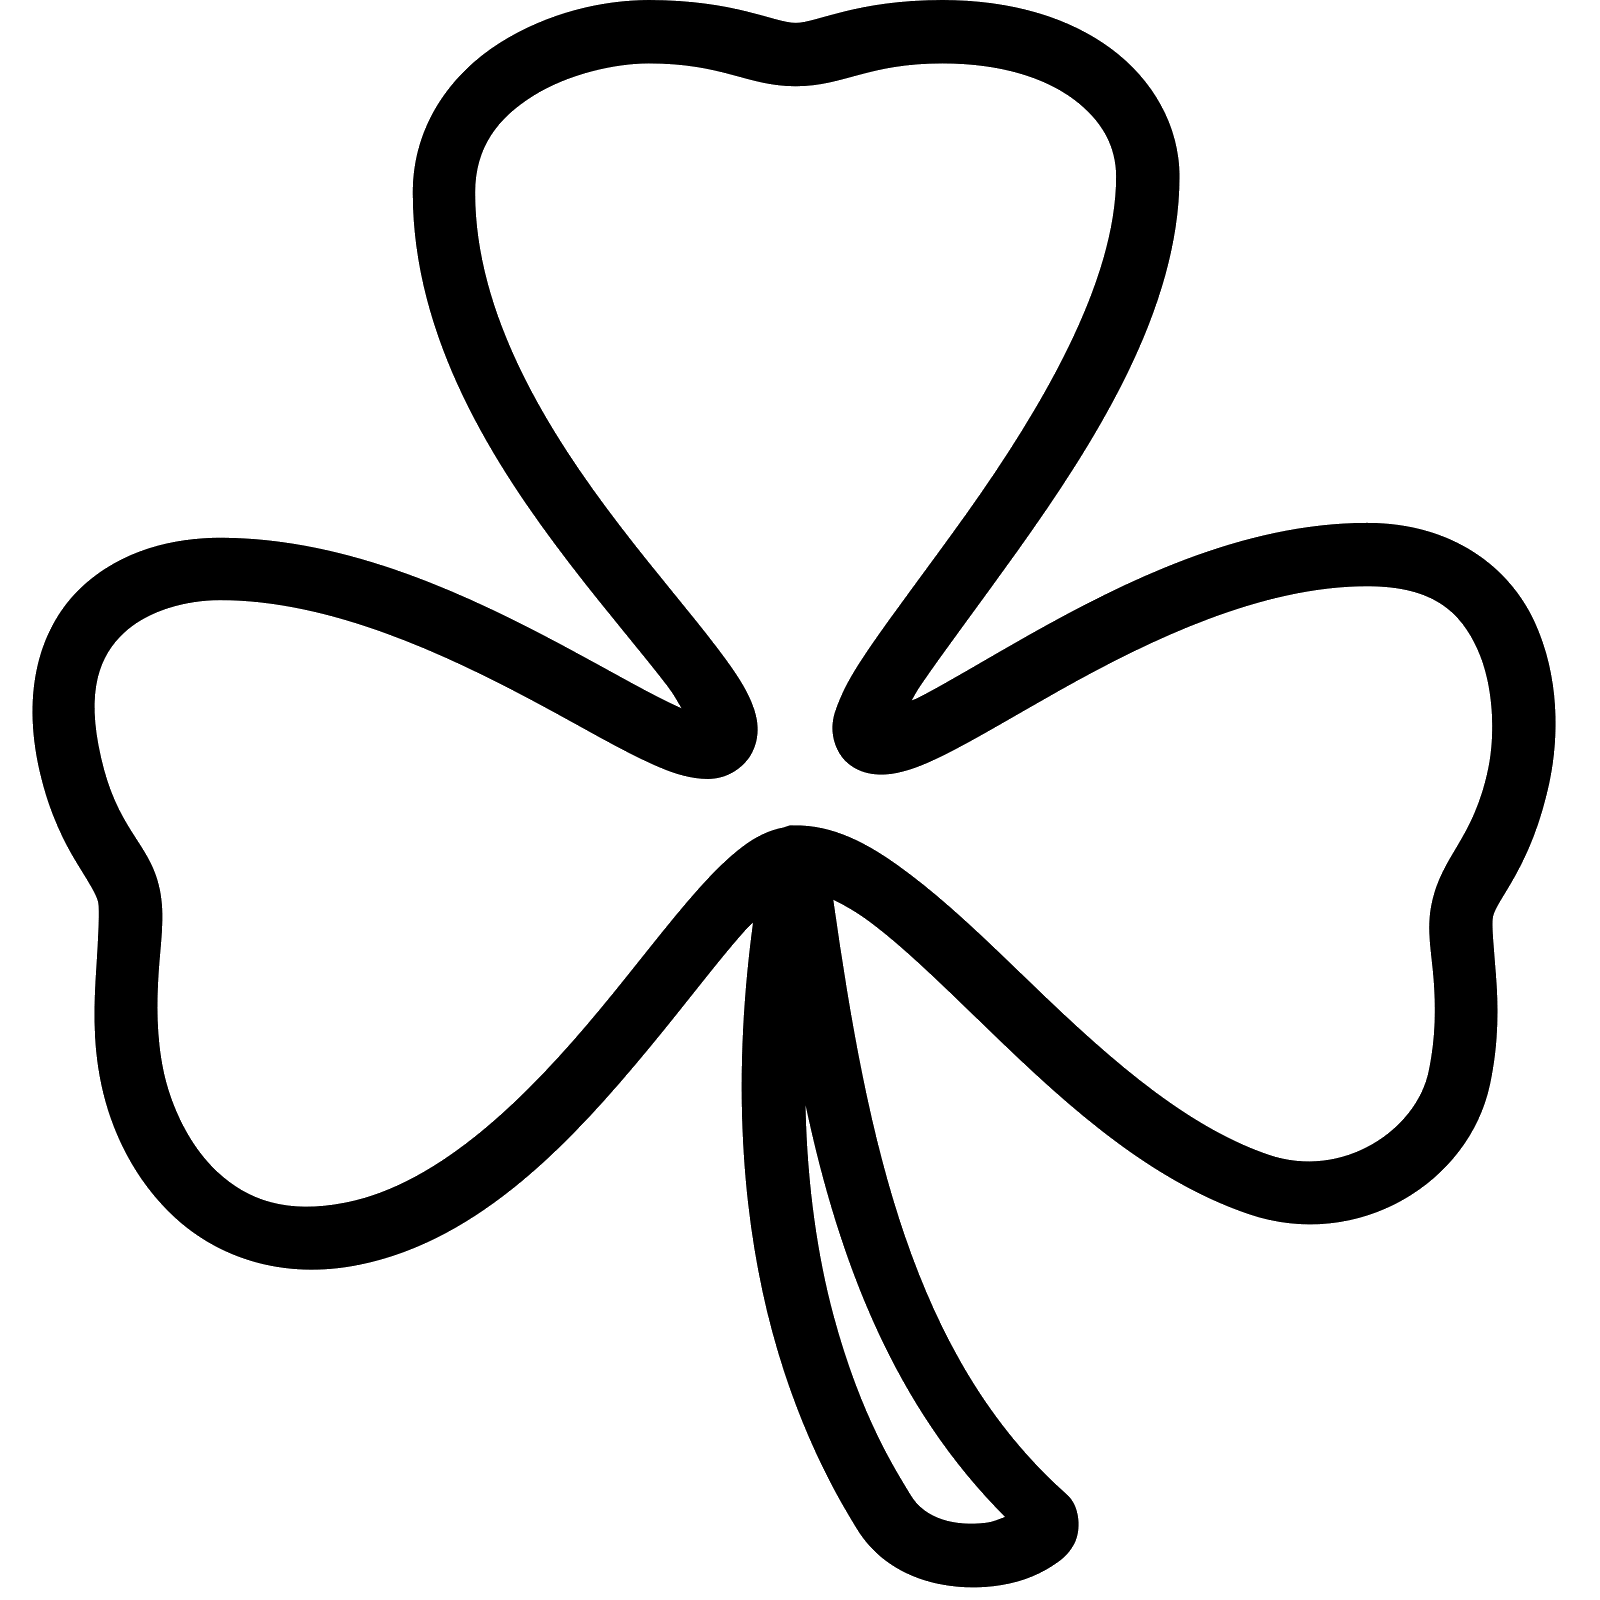 3 Leaf Clover Drawing At Getdrawings